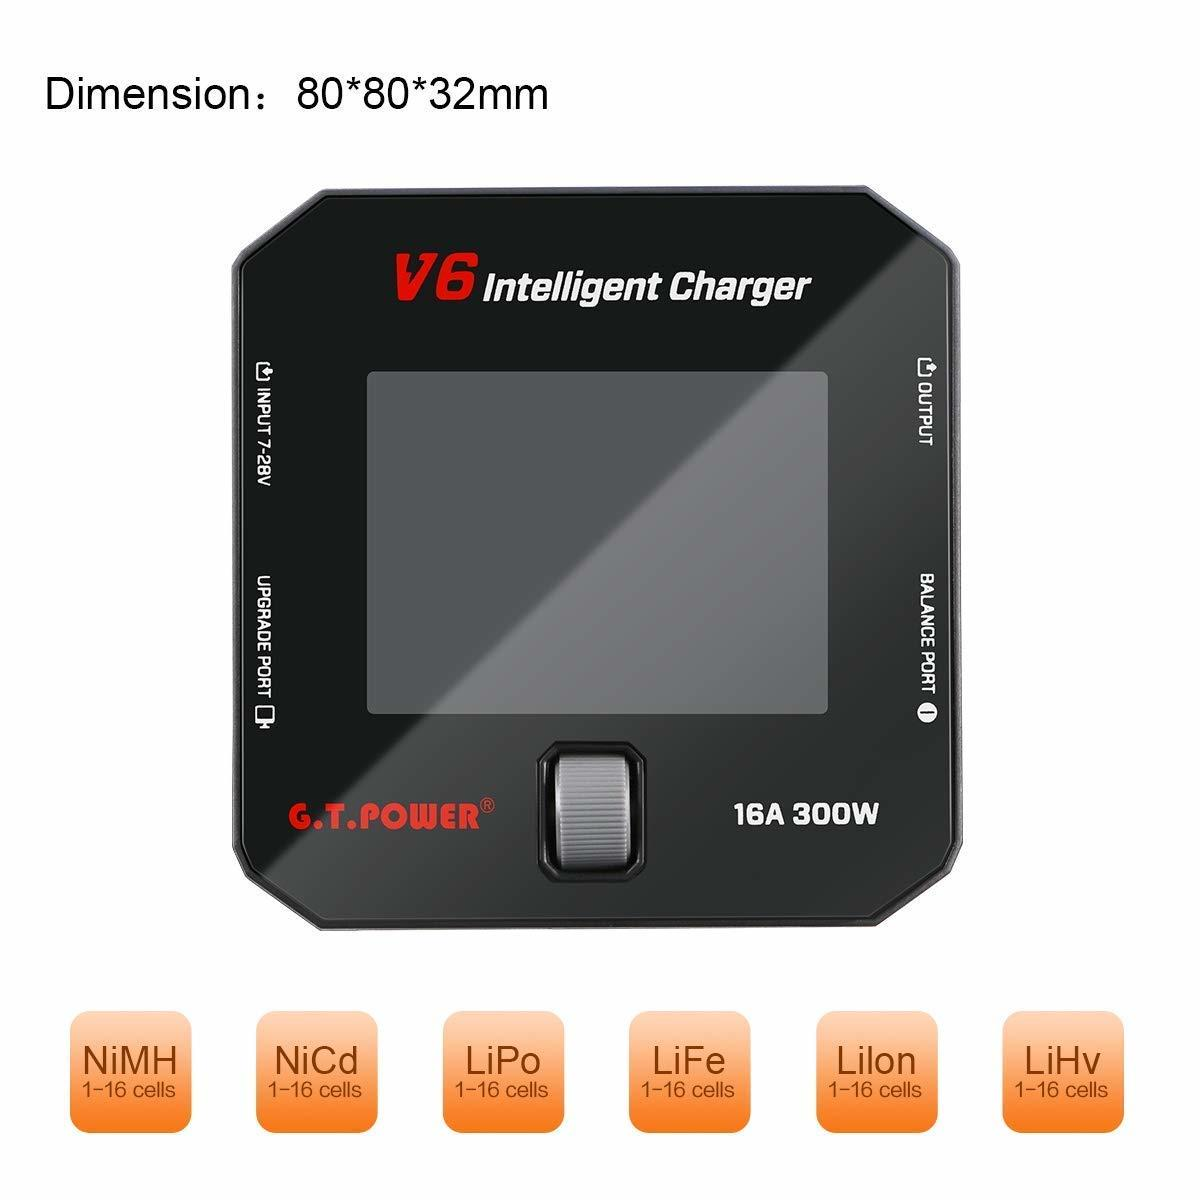 G.T Power V6 Field charger battery types it can charge.